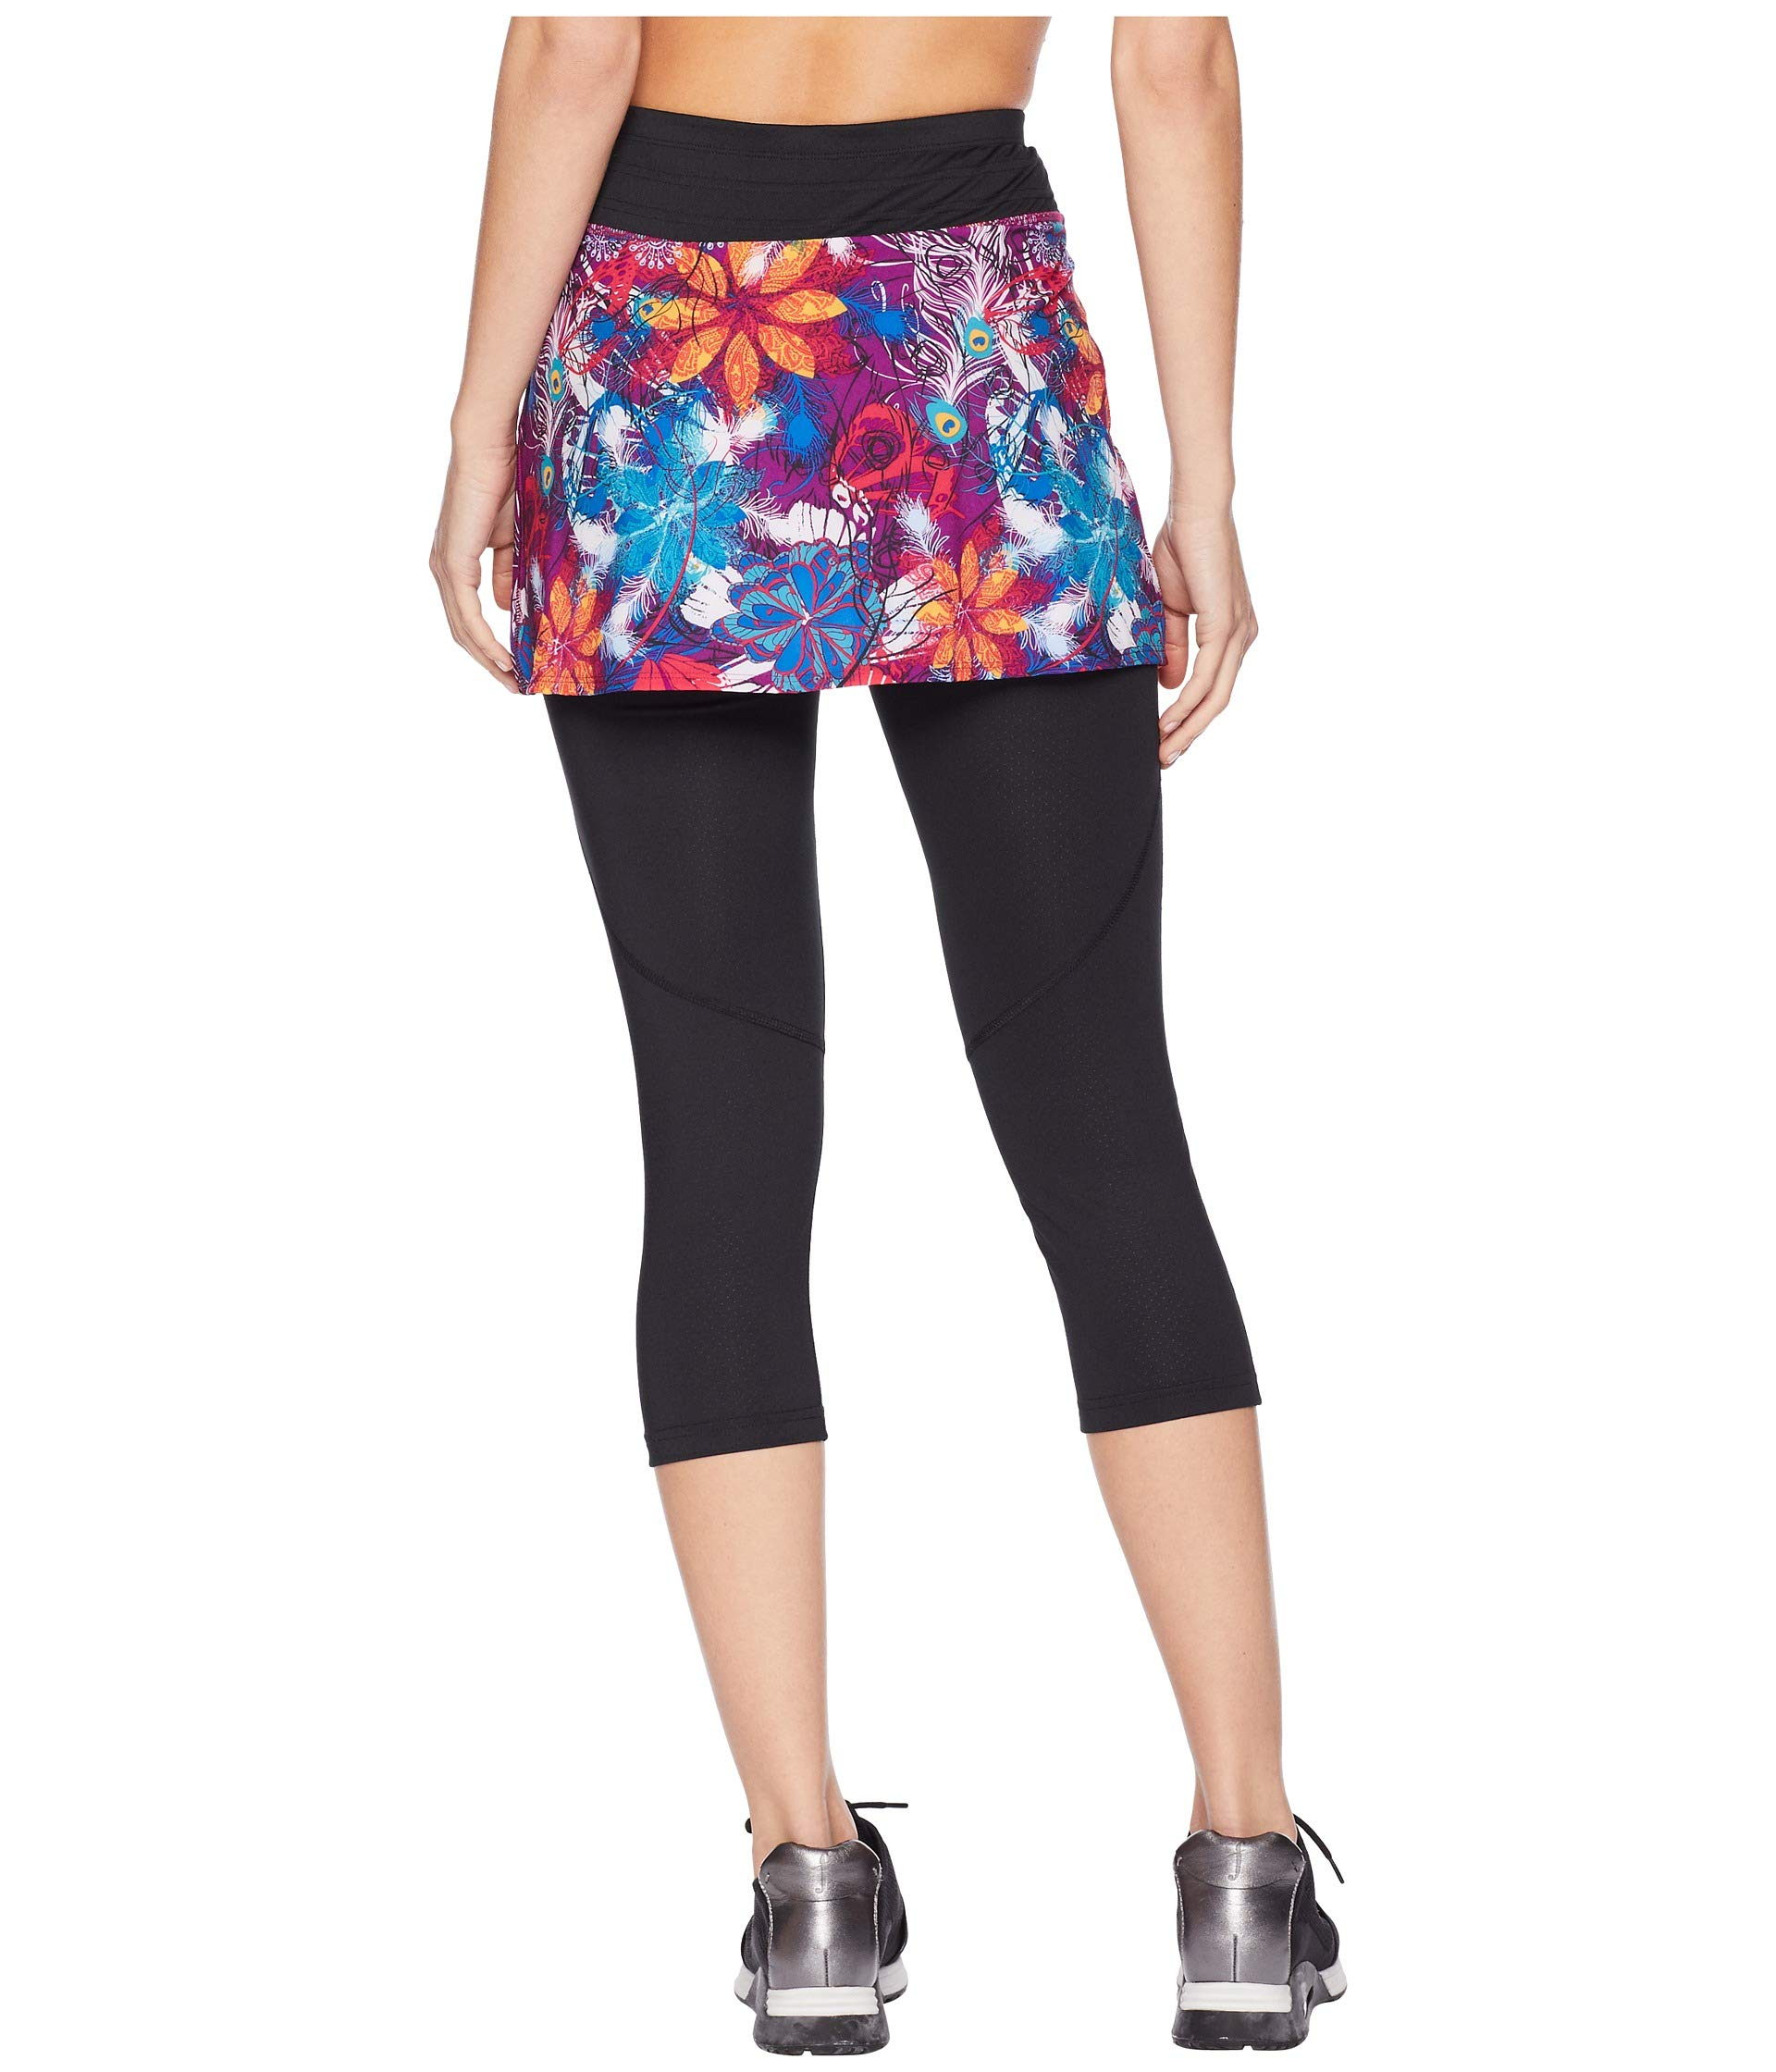 Temper black Hover Capri Tantrum Print Sports Skirt q6twYBt